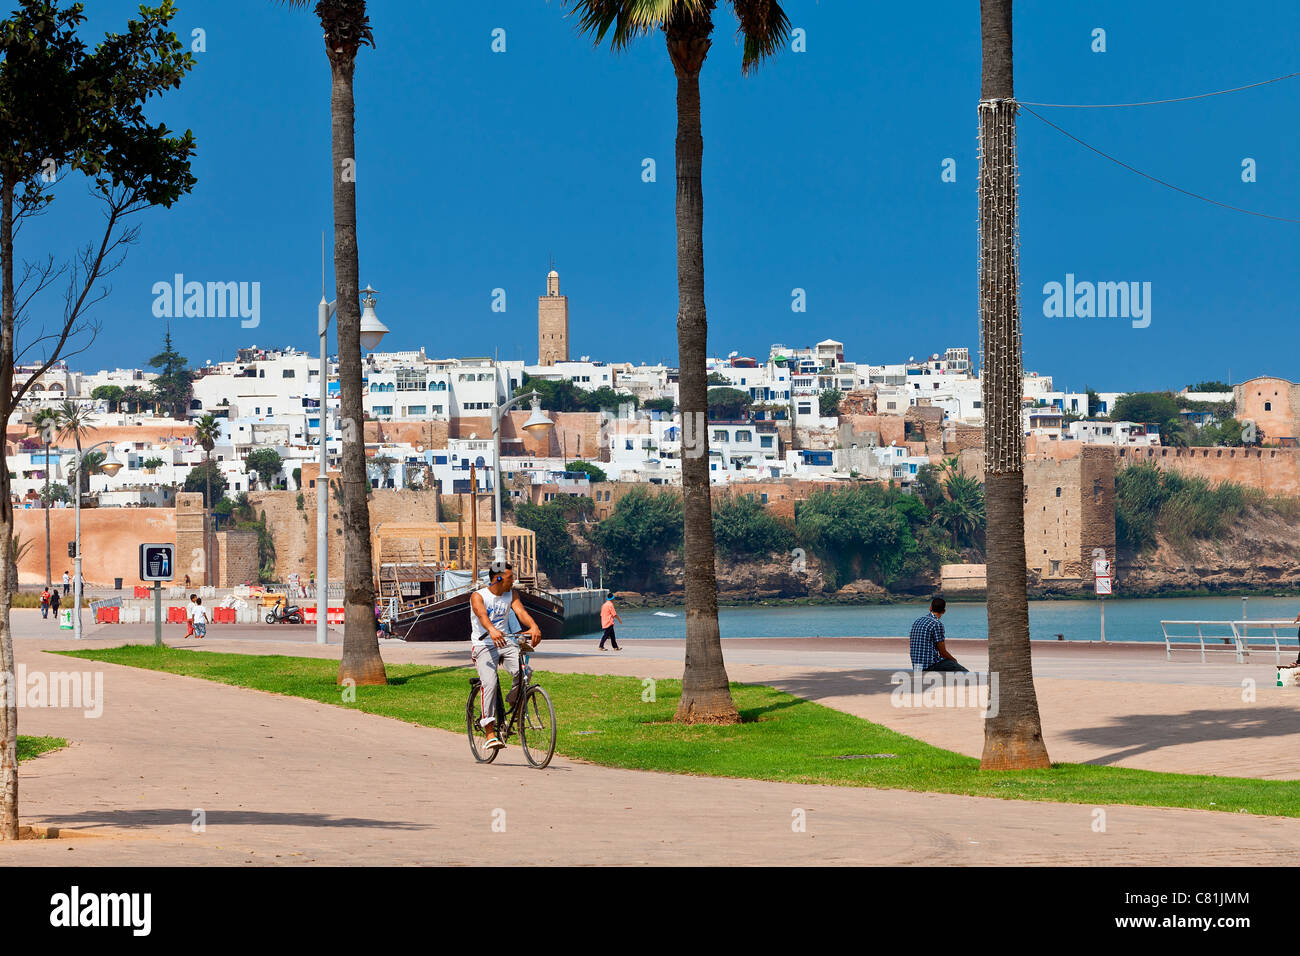 Morocco, Rabat, Riverbank of Bou Regreg River - Stock Image